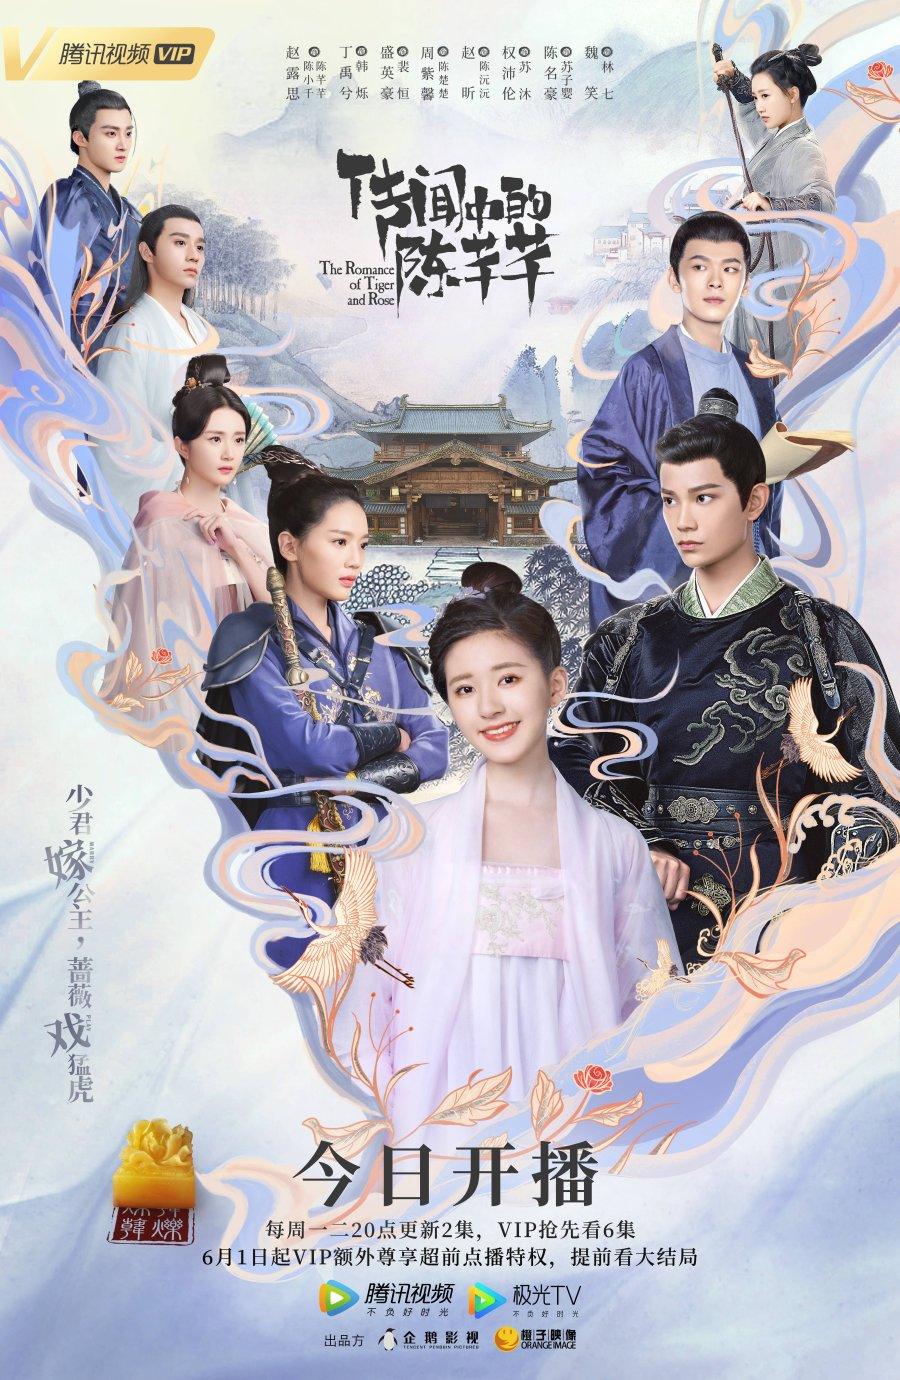 The Romance of Tiger and Rose (drama)